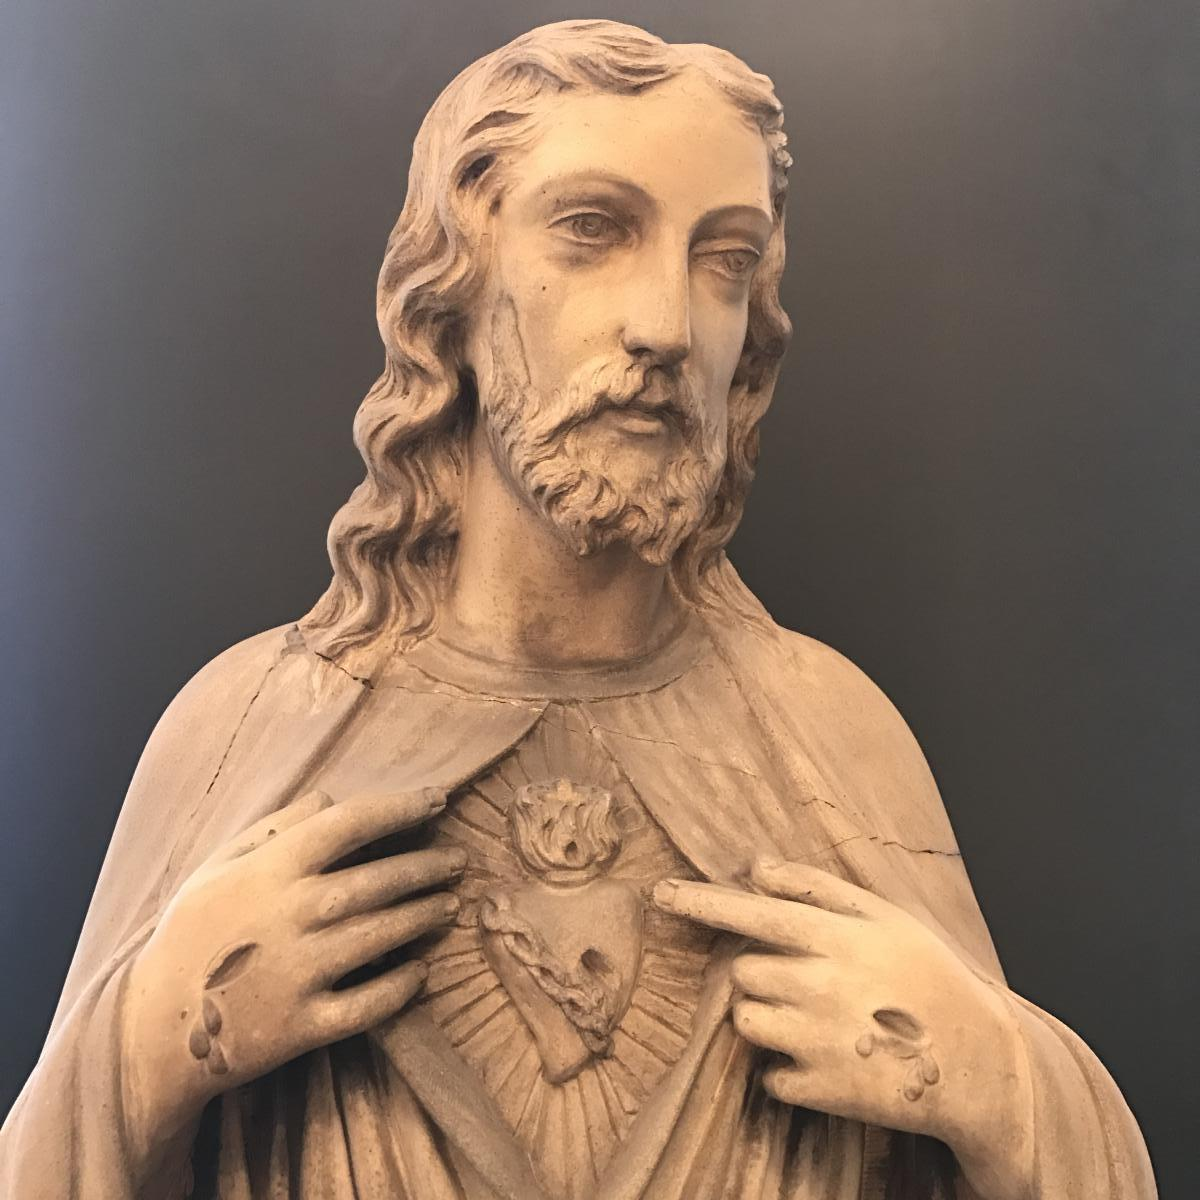 A.brault Large Statue Of Christ In Terracotta H 134 Cm